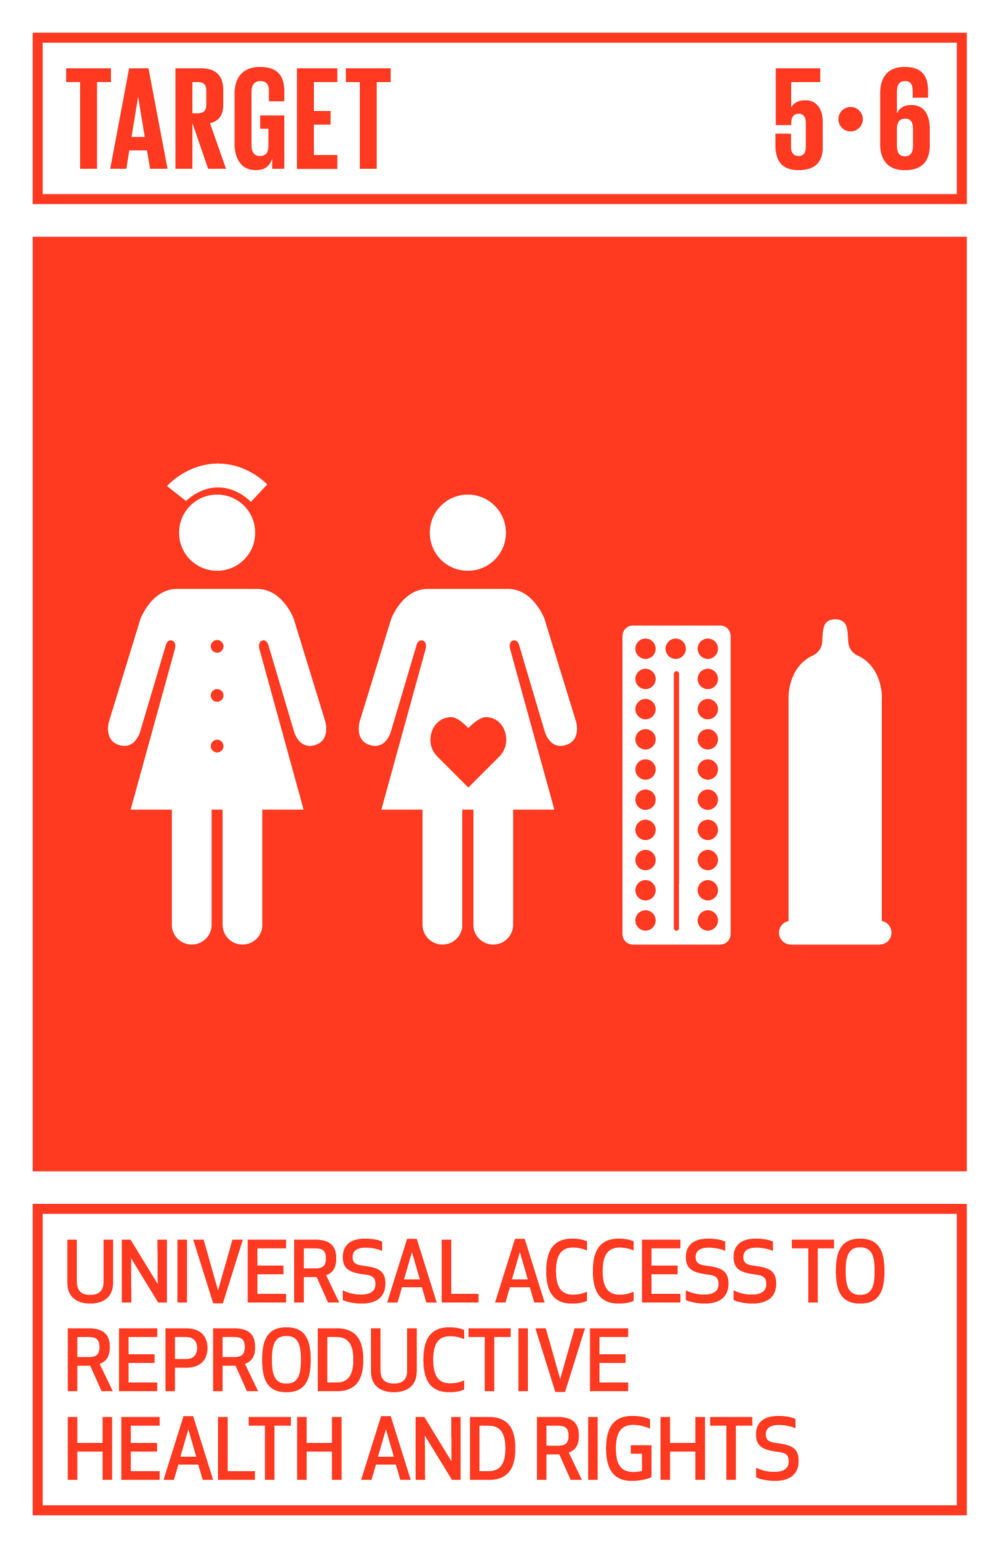 Ensure universal access to sexual and reproductive health and reproductive rights as agreed in accordance with the Programme of Action of the International Conference on Population and Development and the Beijing Platform for Action and the outcome documents of their review conferences.   INDICATORS    5.6.1  Proportion of women aged 15–49 years who make their own informed decisions regarding sexual relations, contraceptive use and reproductive health care   5.6.2  Number of countries with laws and regulations that guarantee full and equal access to women and men aged 15 years and older to sexual and reproductive health care, information and education